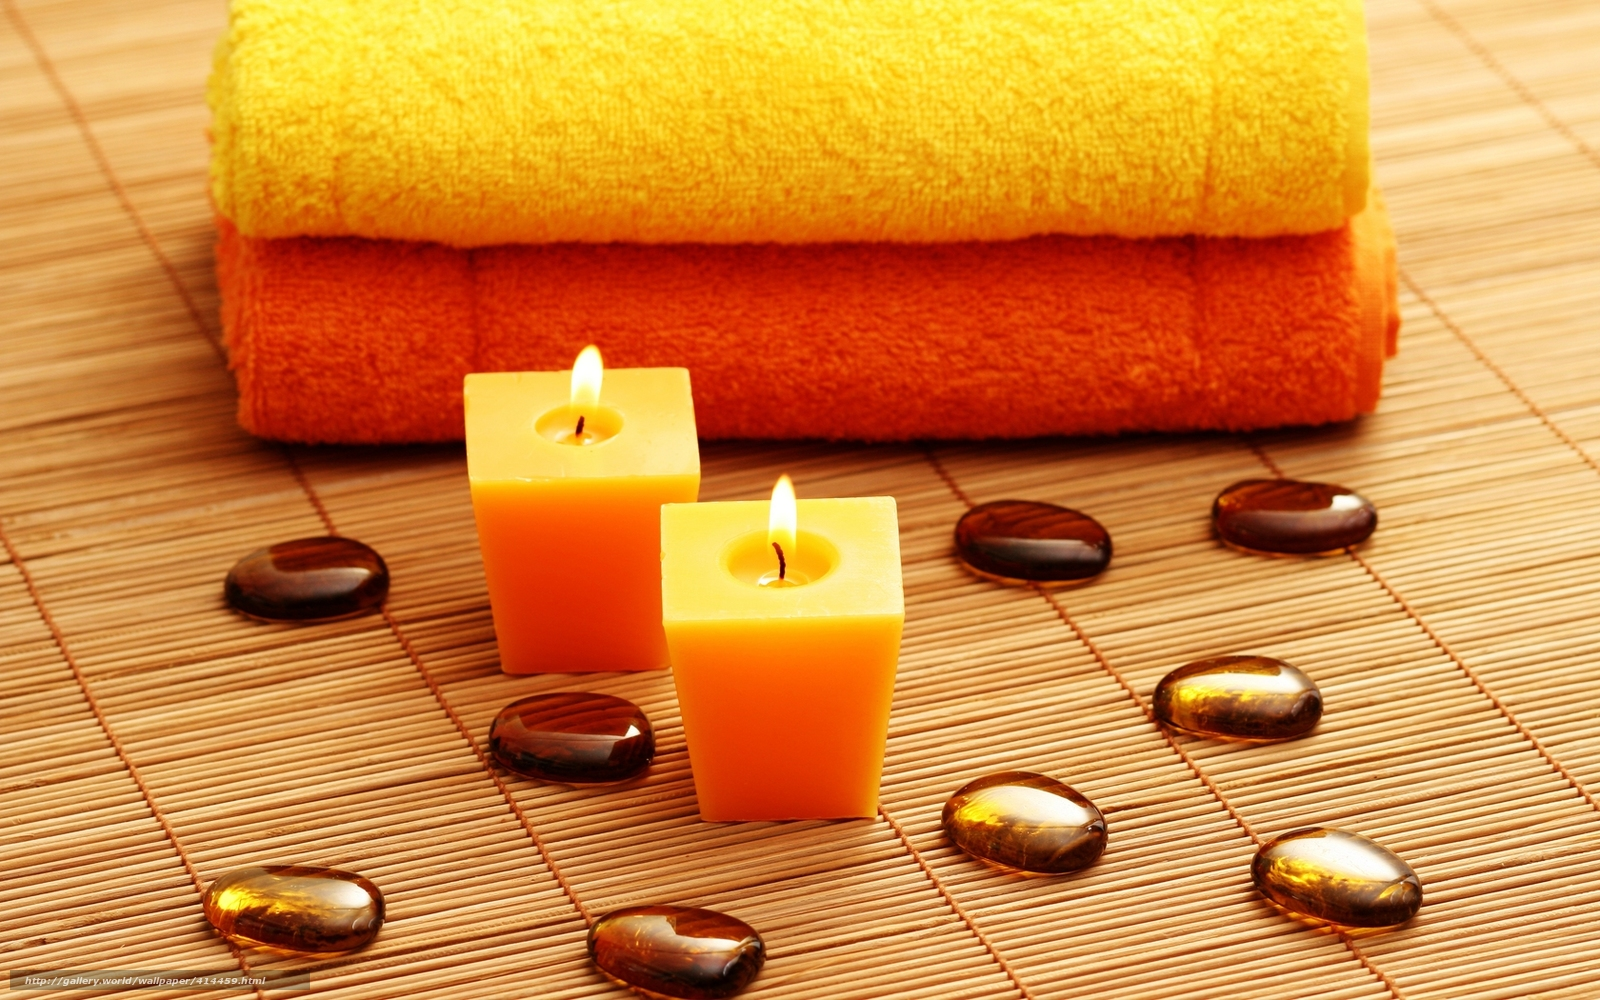 Download wallpaper candles spa stones towels free for Salon wallpaper